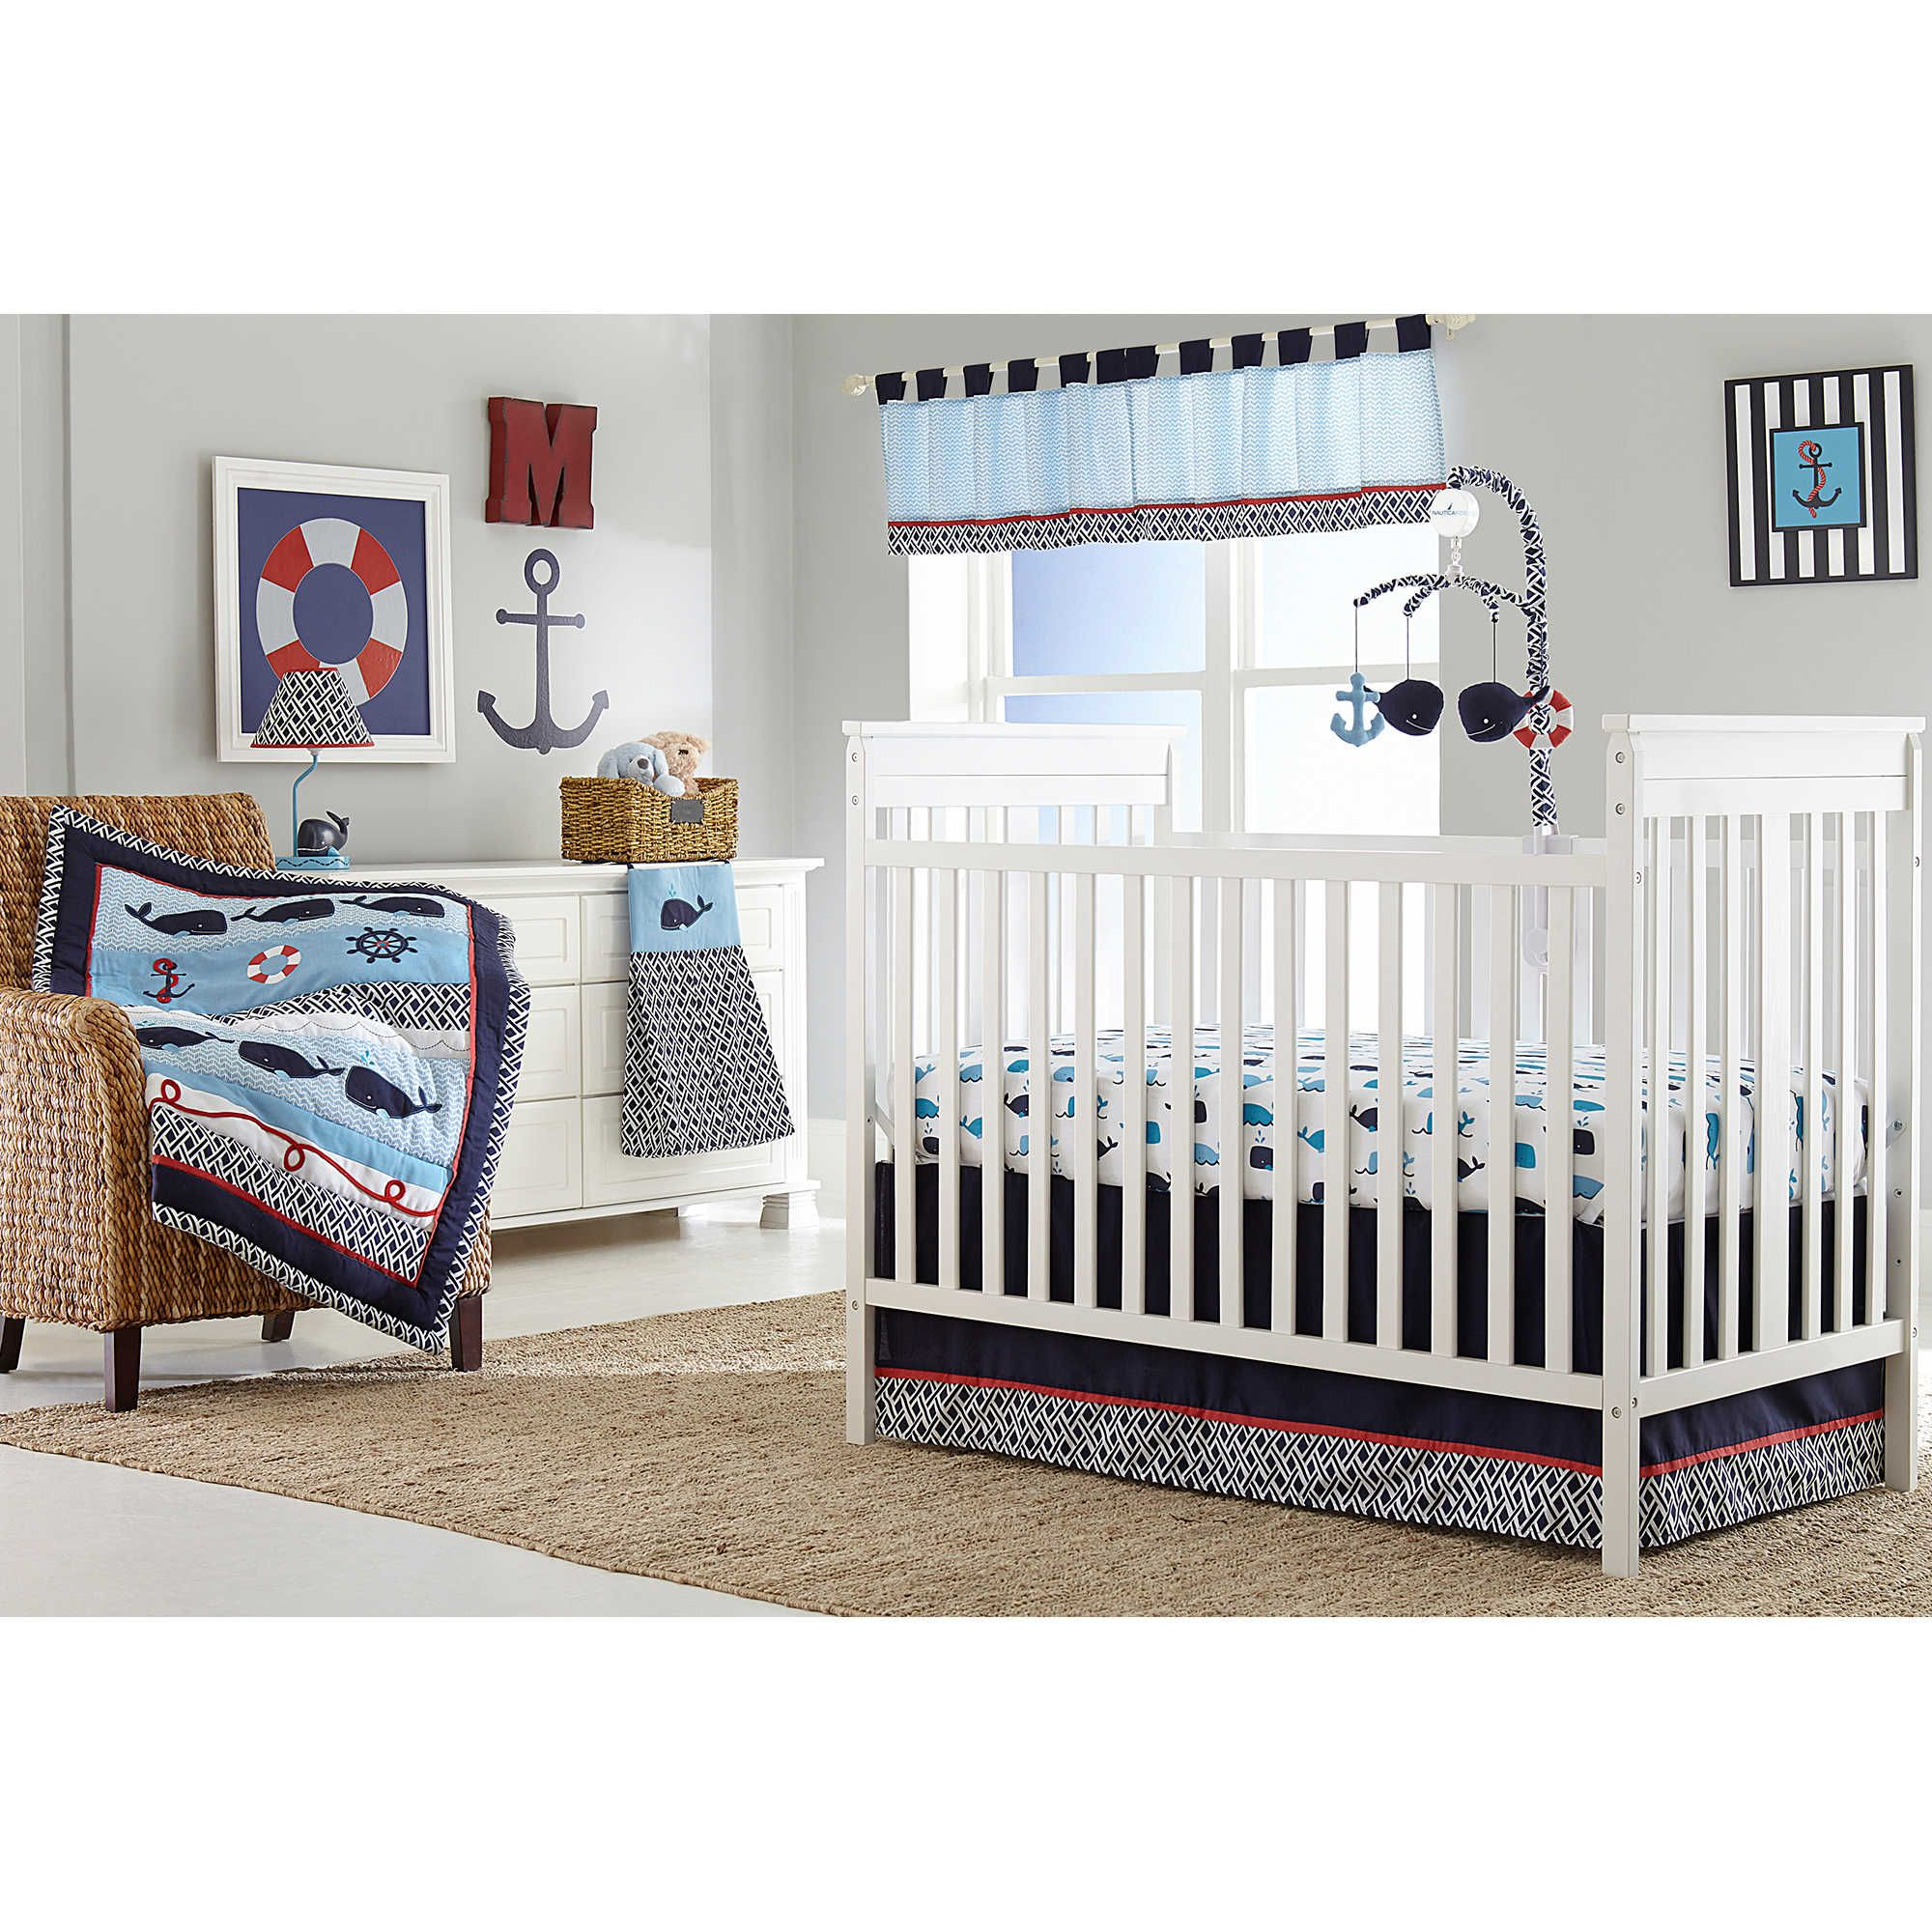 Nautica crib bedding whale - Nautica Kids Whale Of A Tale Crib Bedding Collection Www Buybuybaby Com